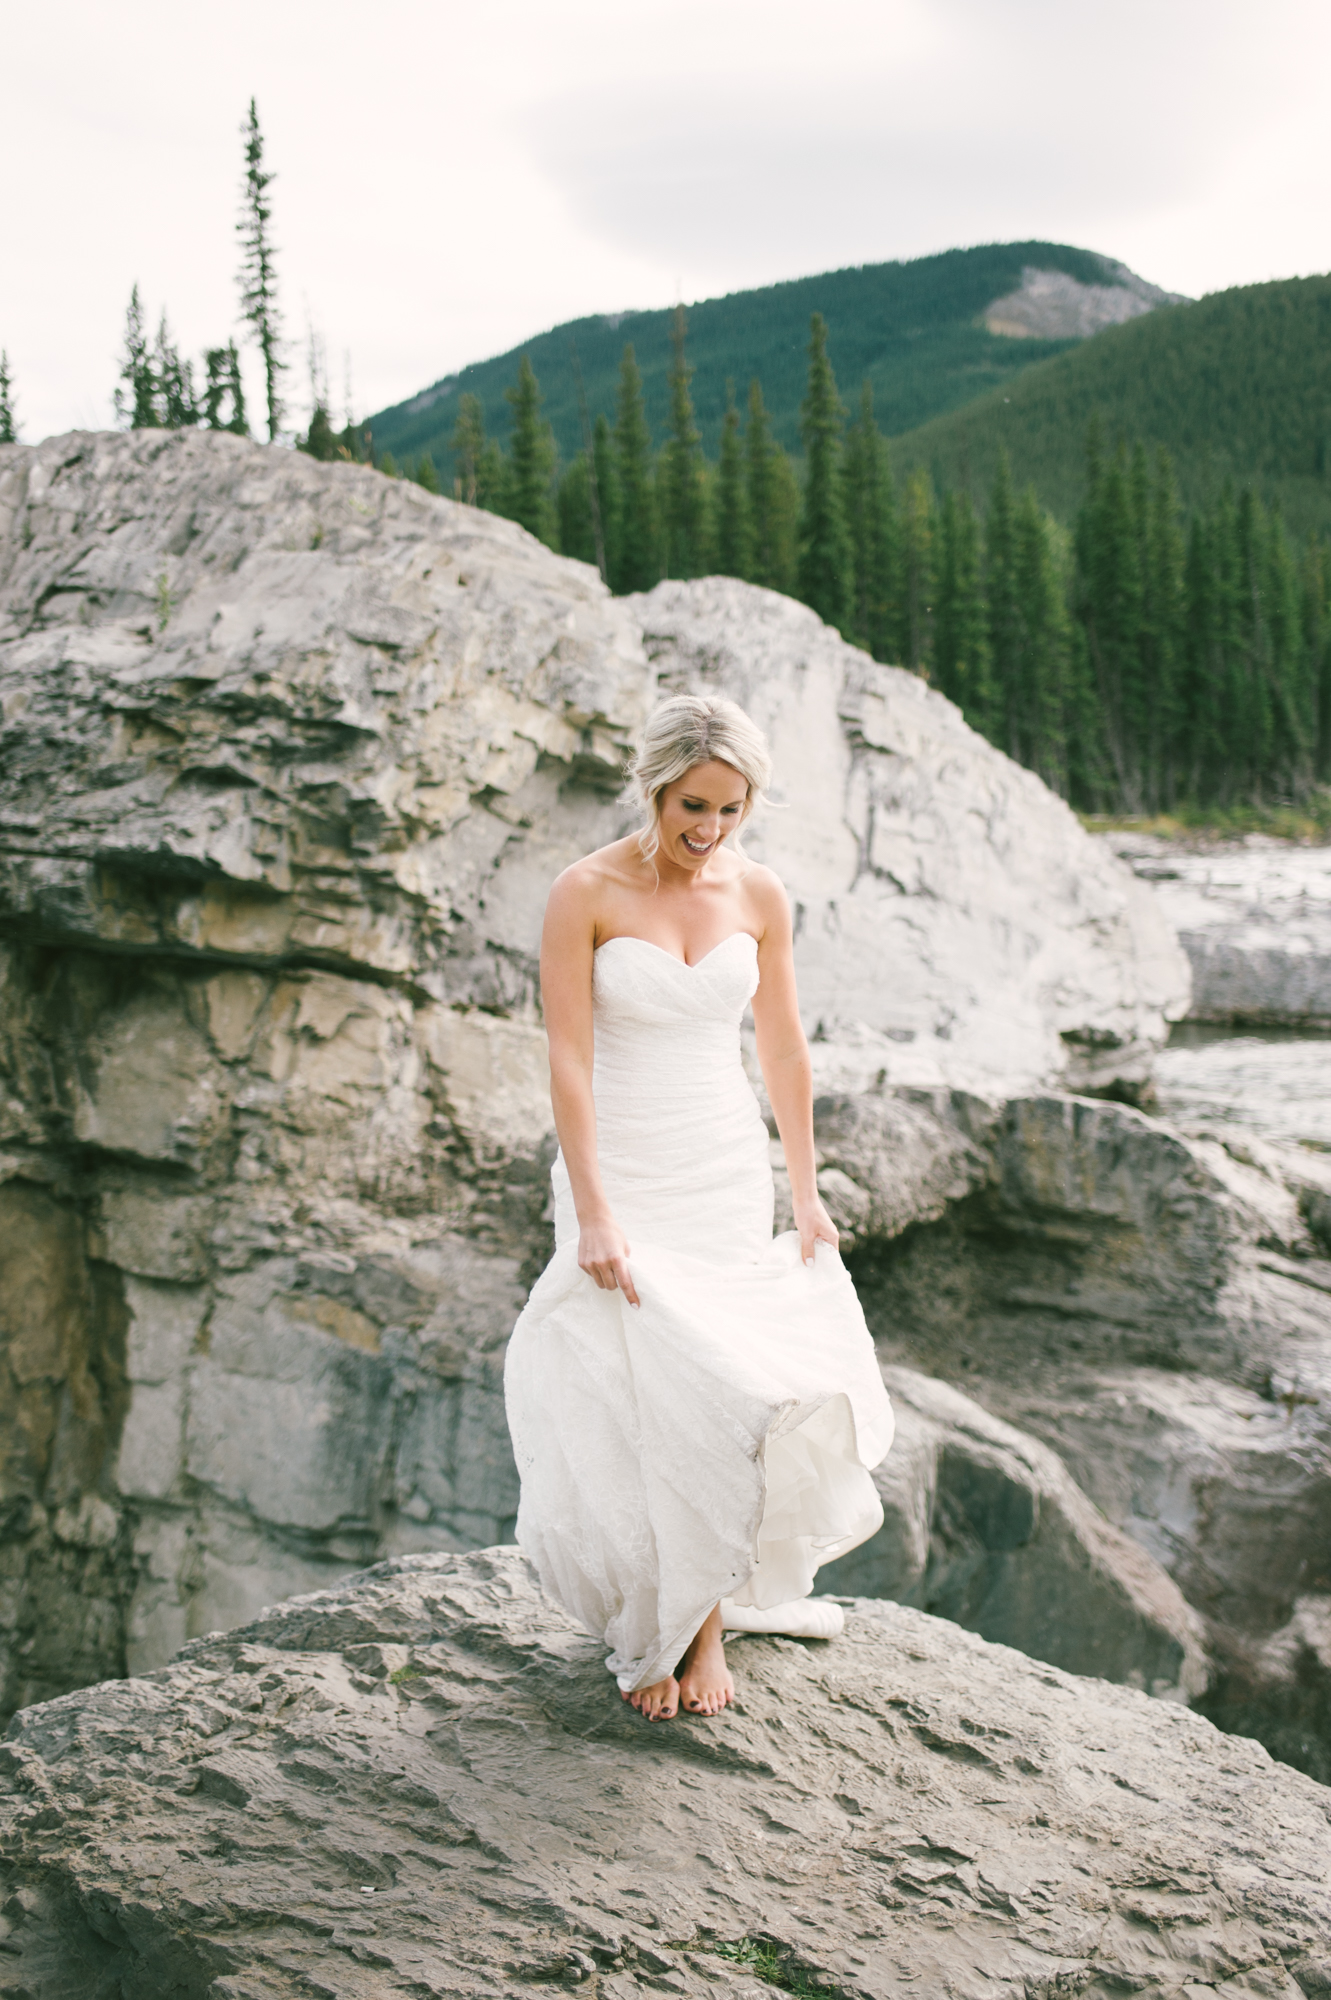 Rocky Mountain Banff Calgary Alberta Wedding-Jessika Hunter Photo-67.JPG